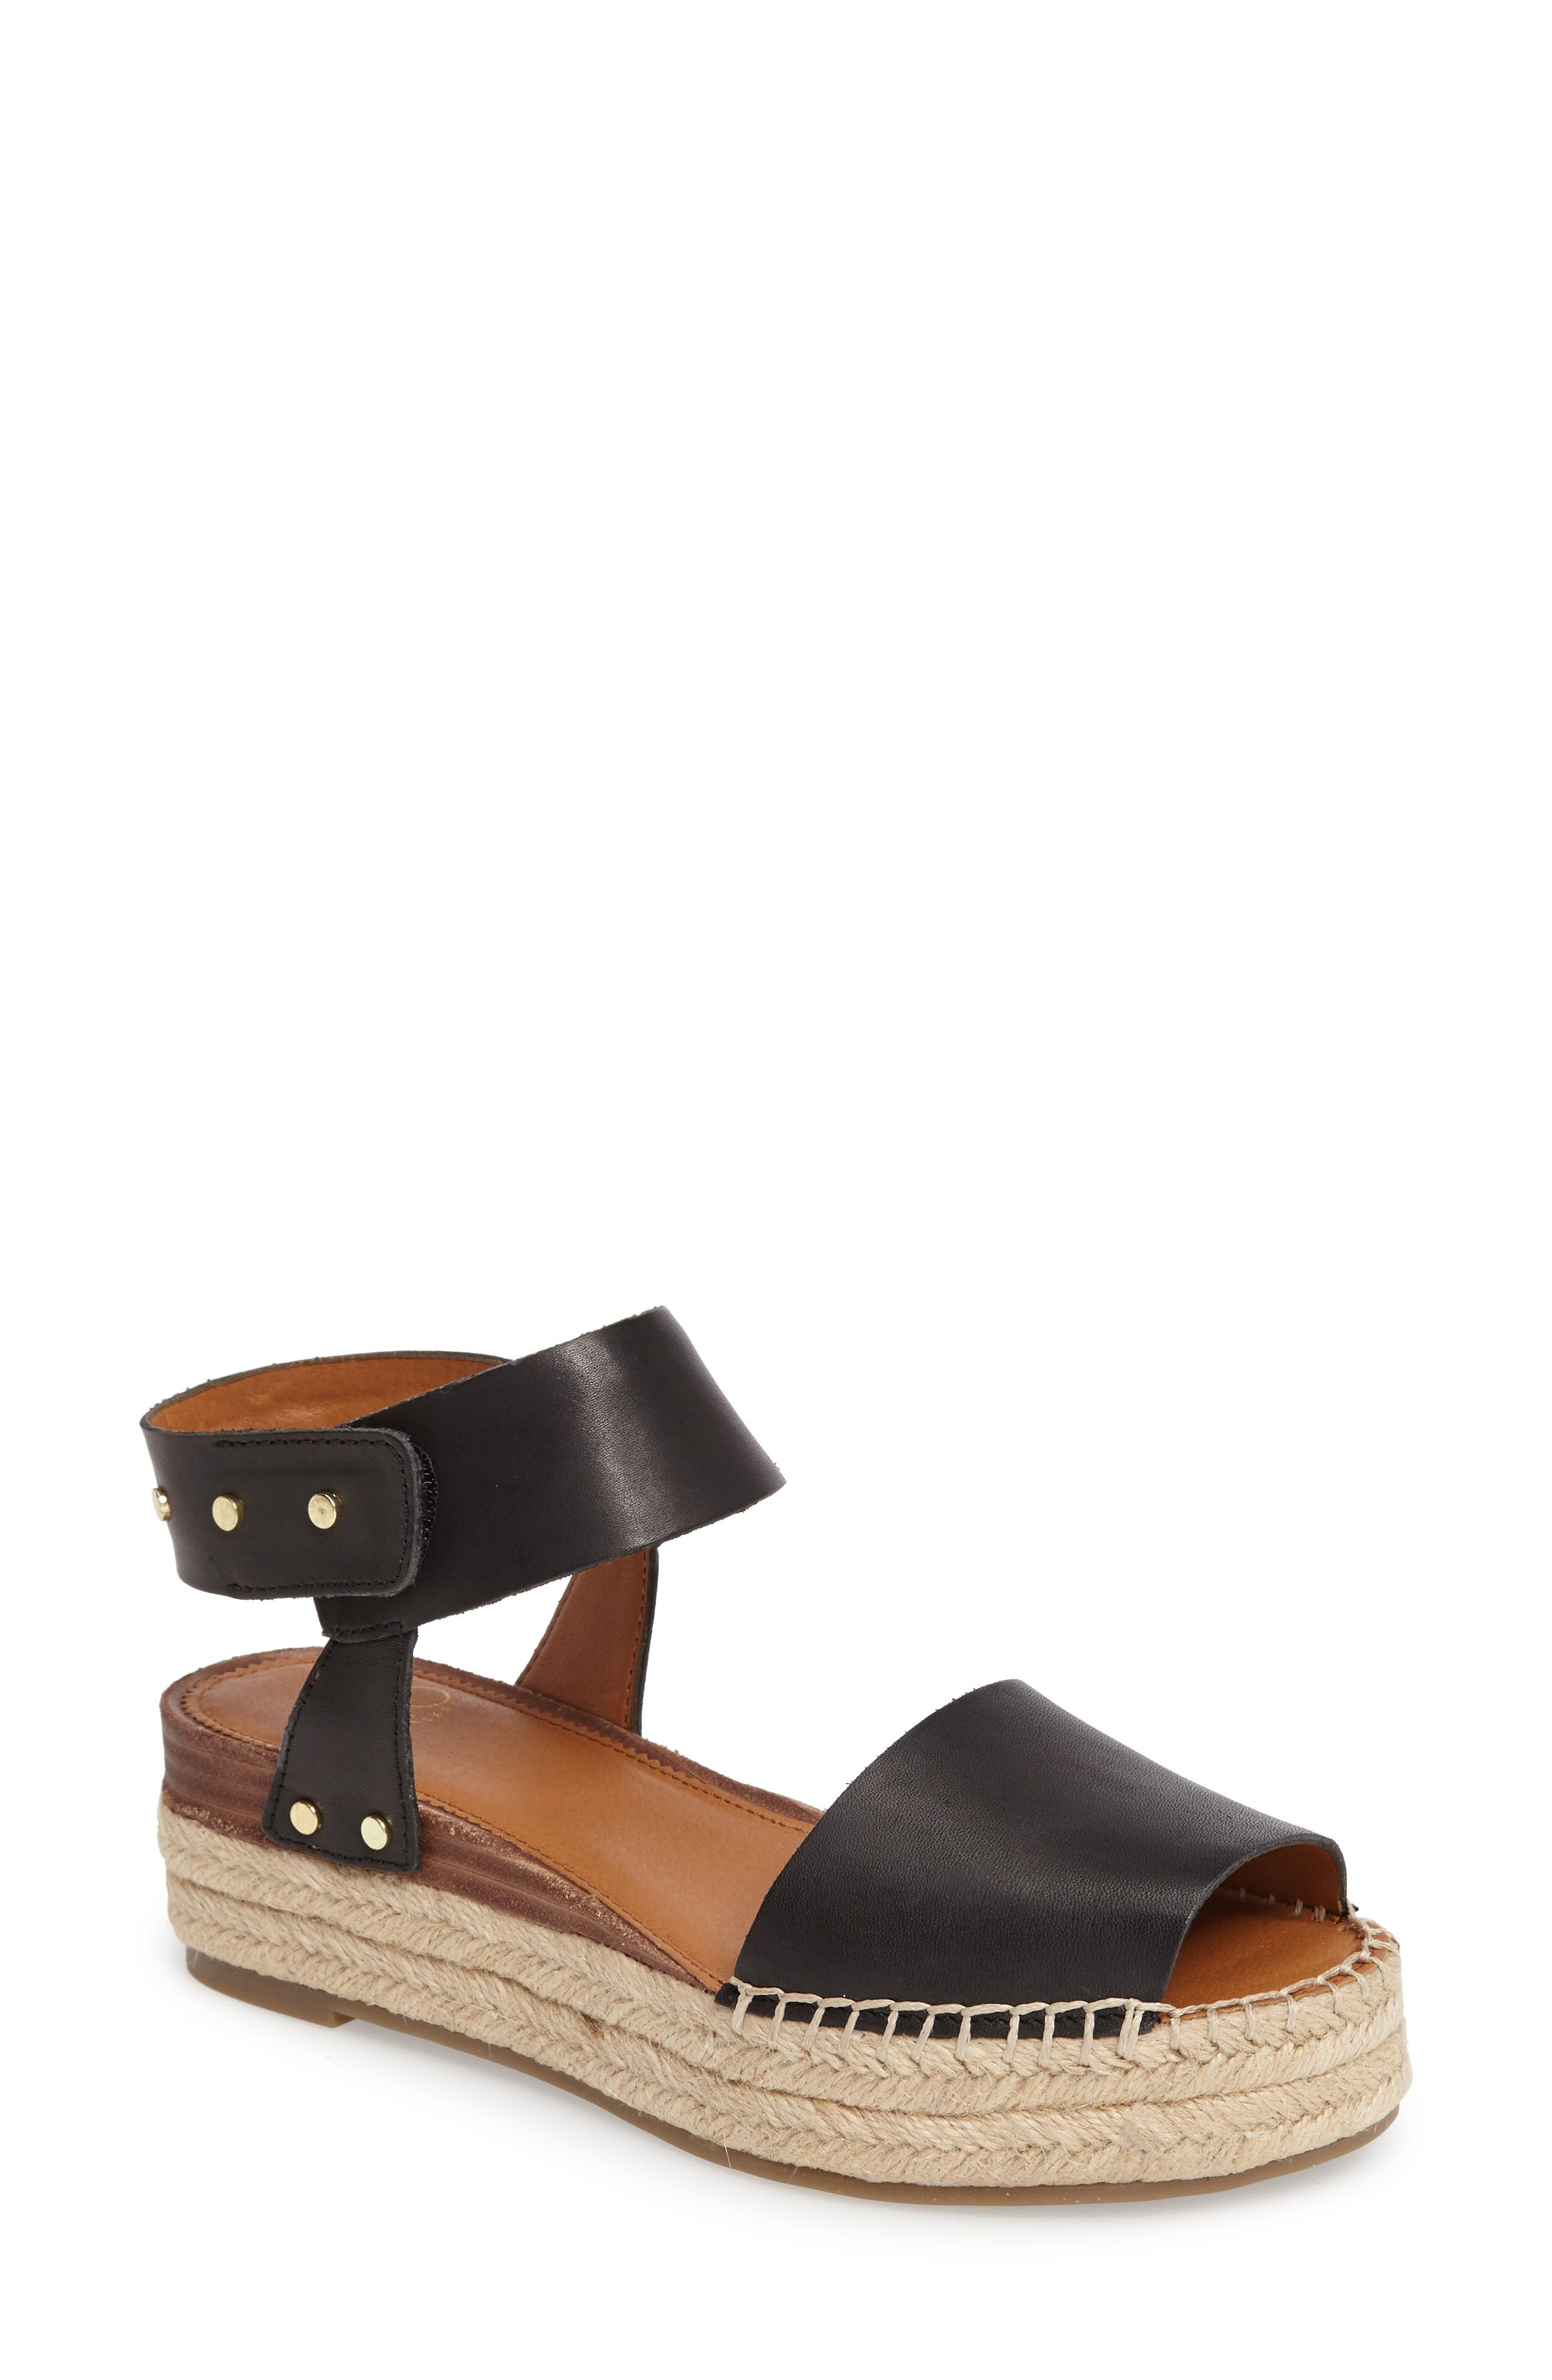 Alternate Image 1 Selected - SARTO by Franco Sarto Oak Platform Wedge Espadrille (Women)